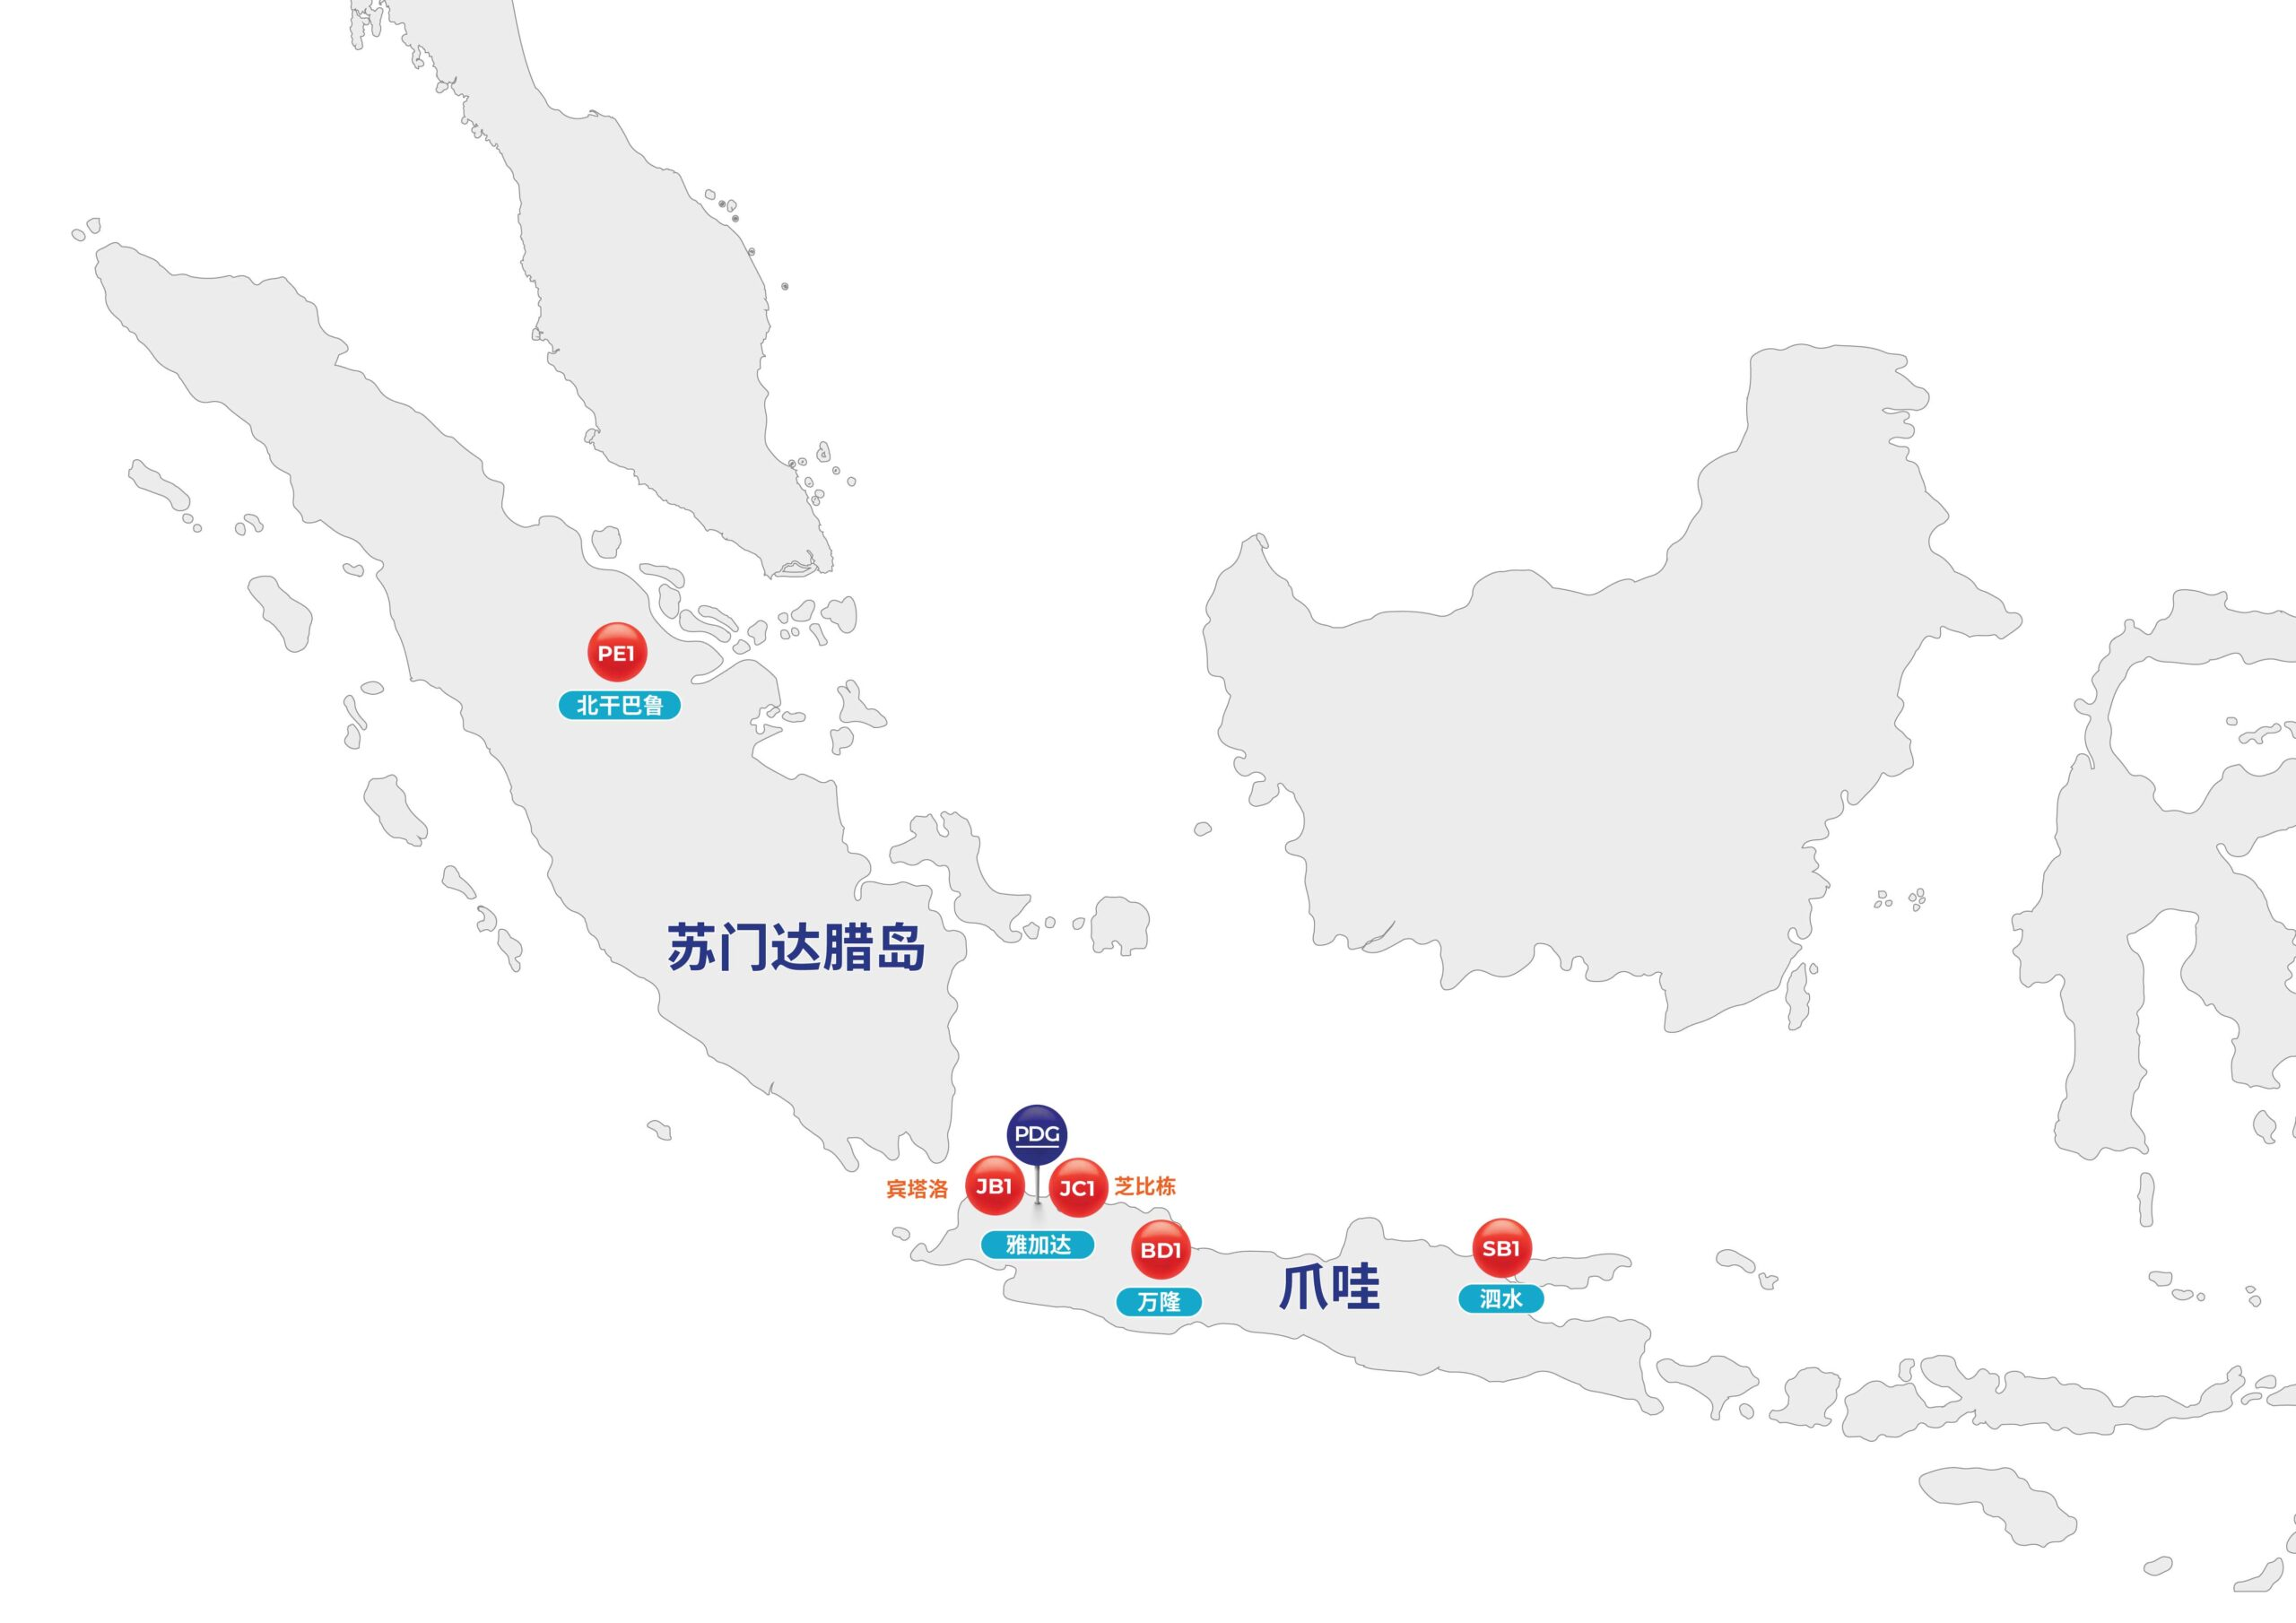 Map of Indonesia and PDG Presence